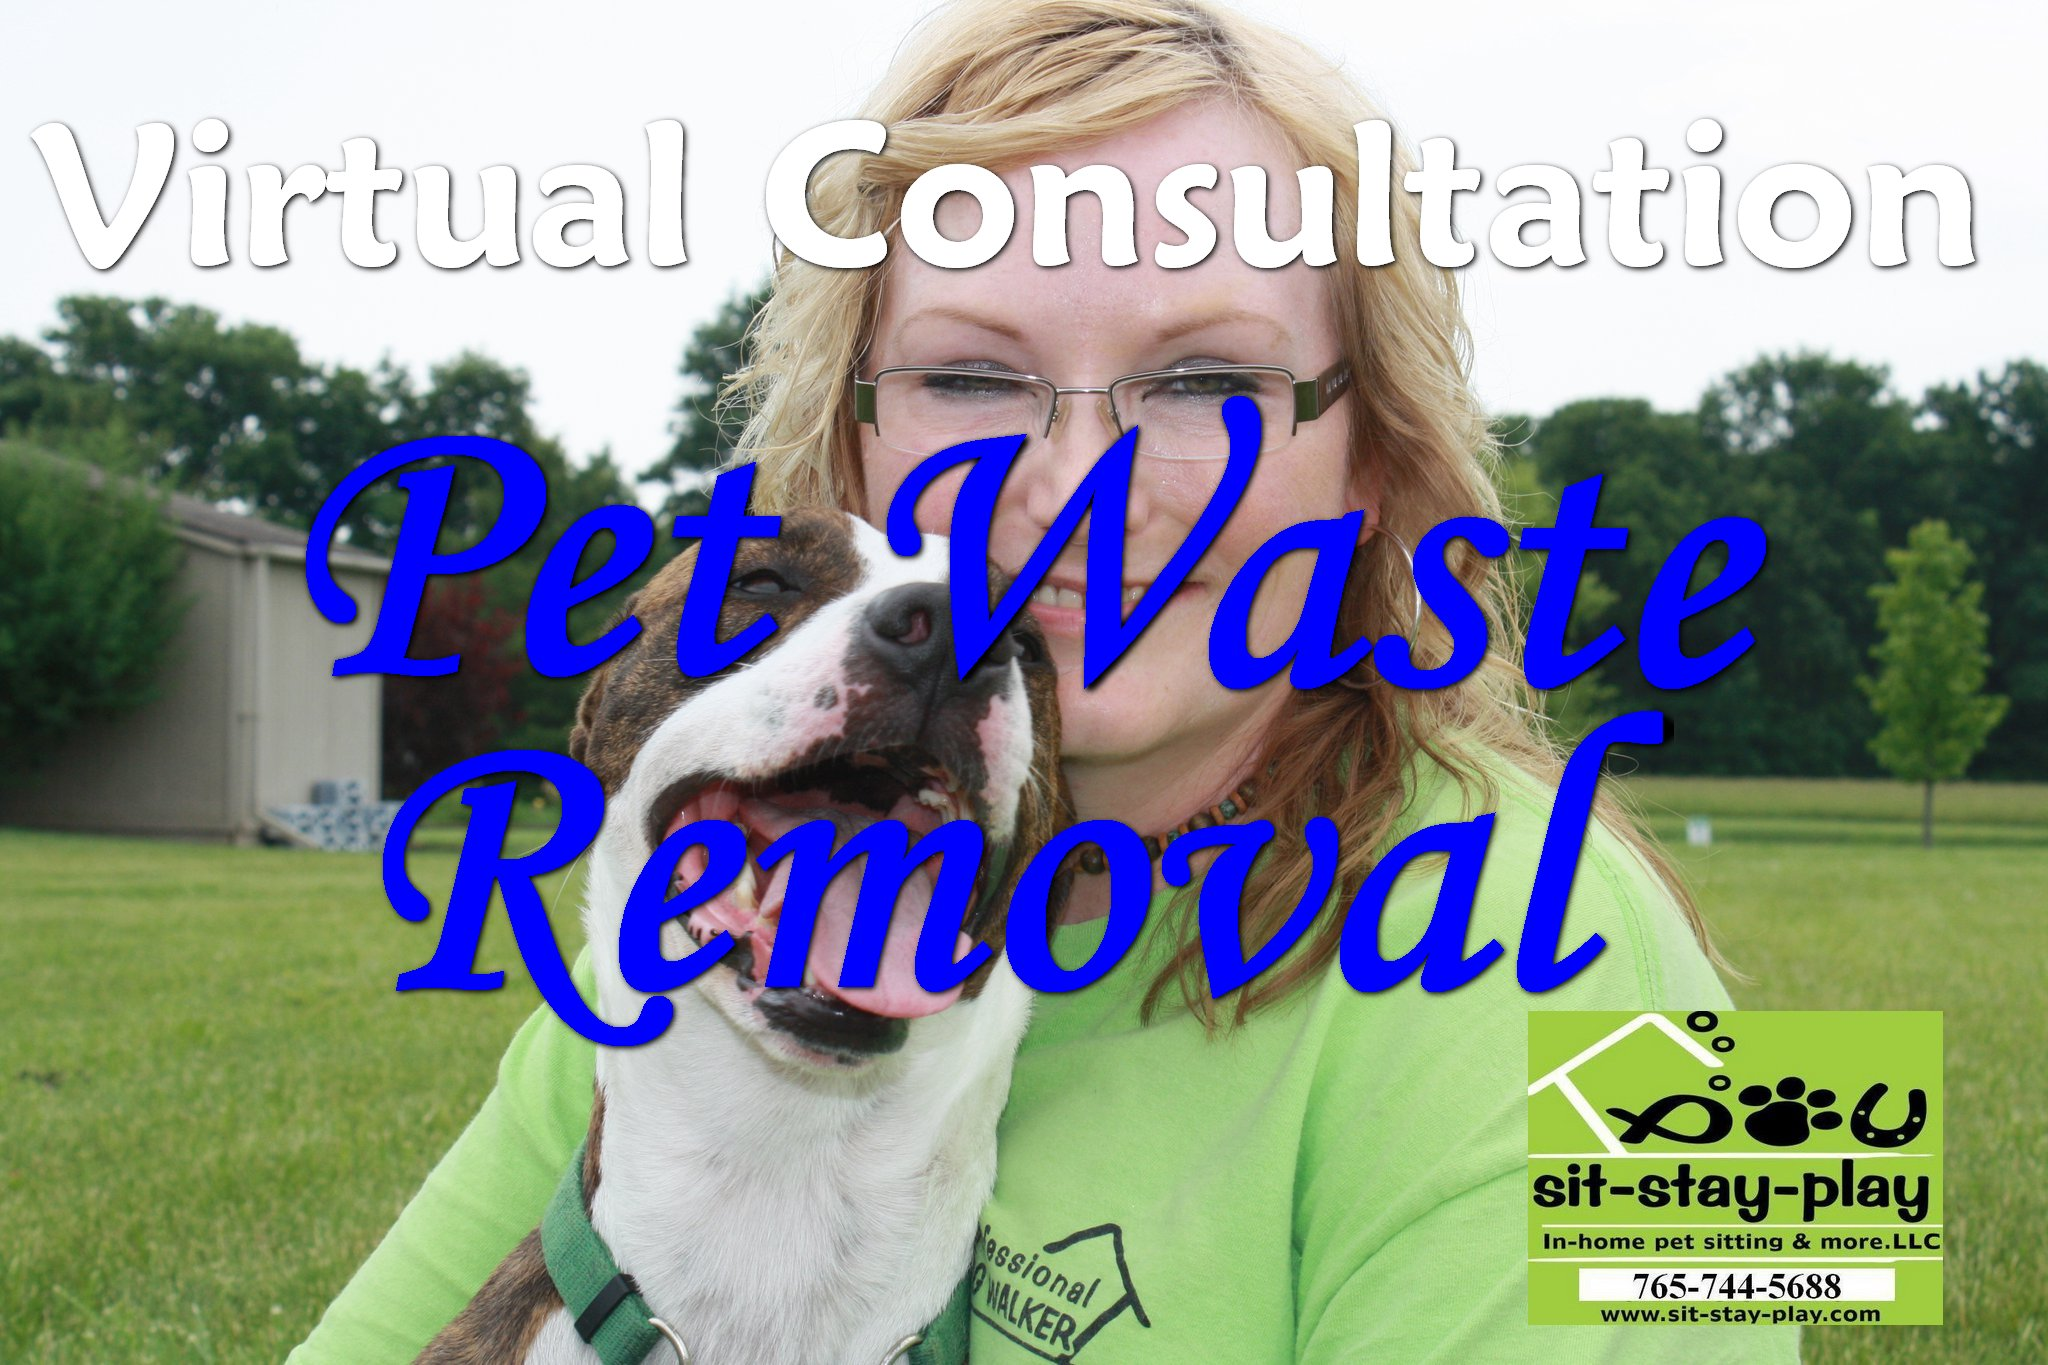 http://www.sit-stay-play.com/virtual-consultation-pet-waste-removal